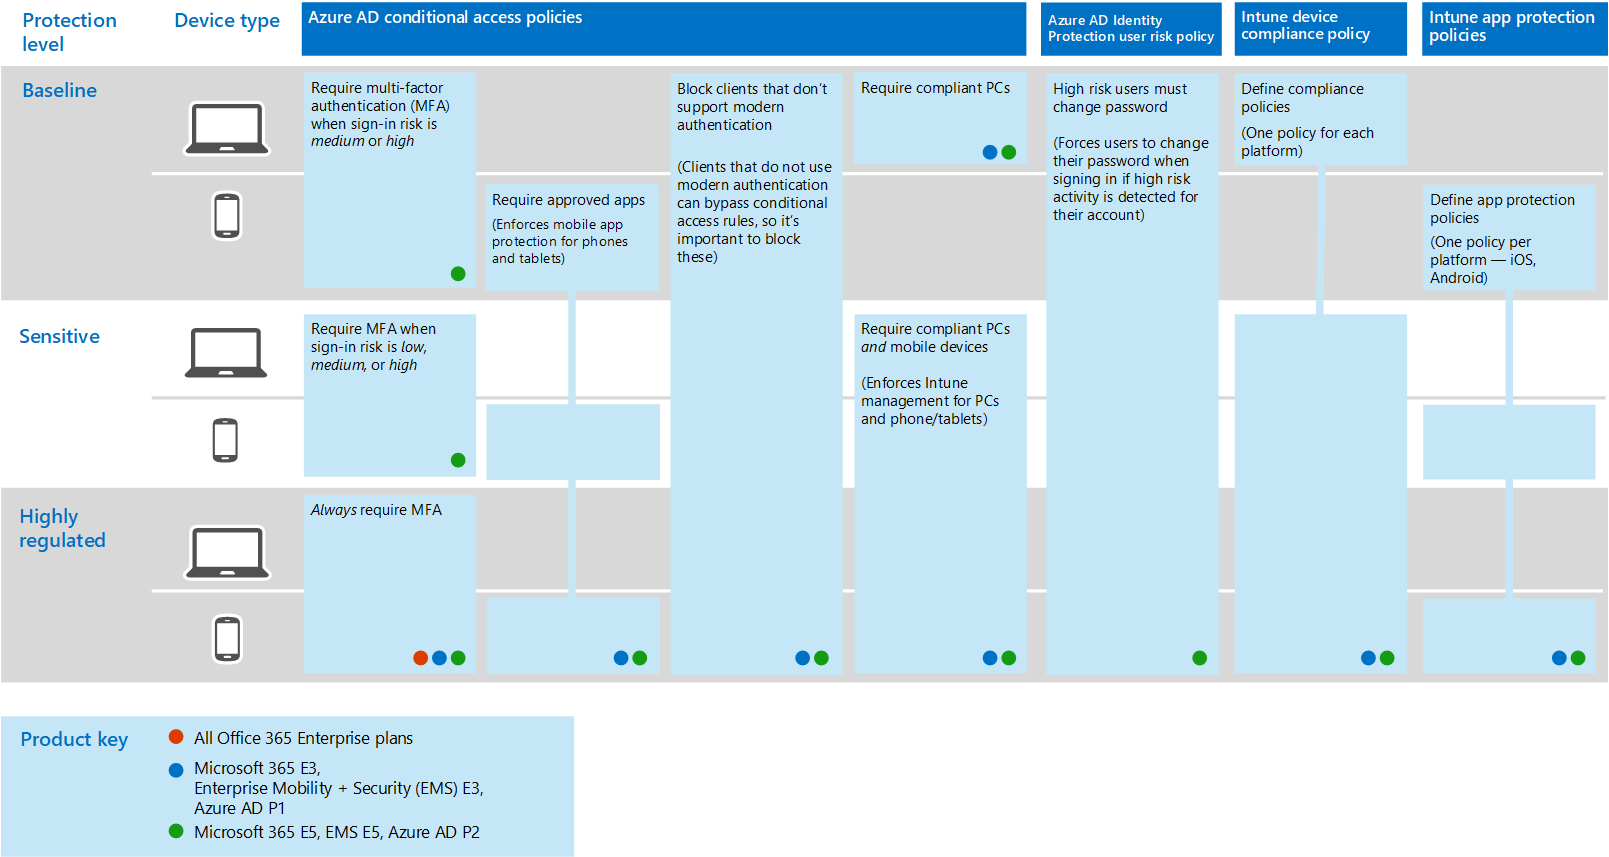 Common identity and device access policies - Microsoft 365